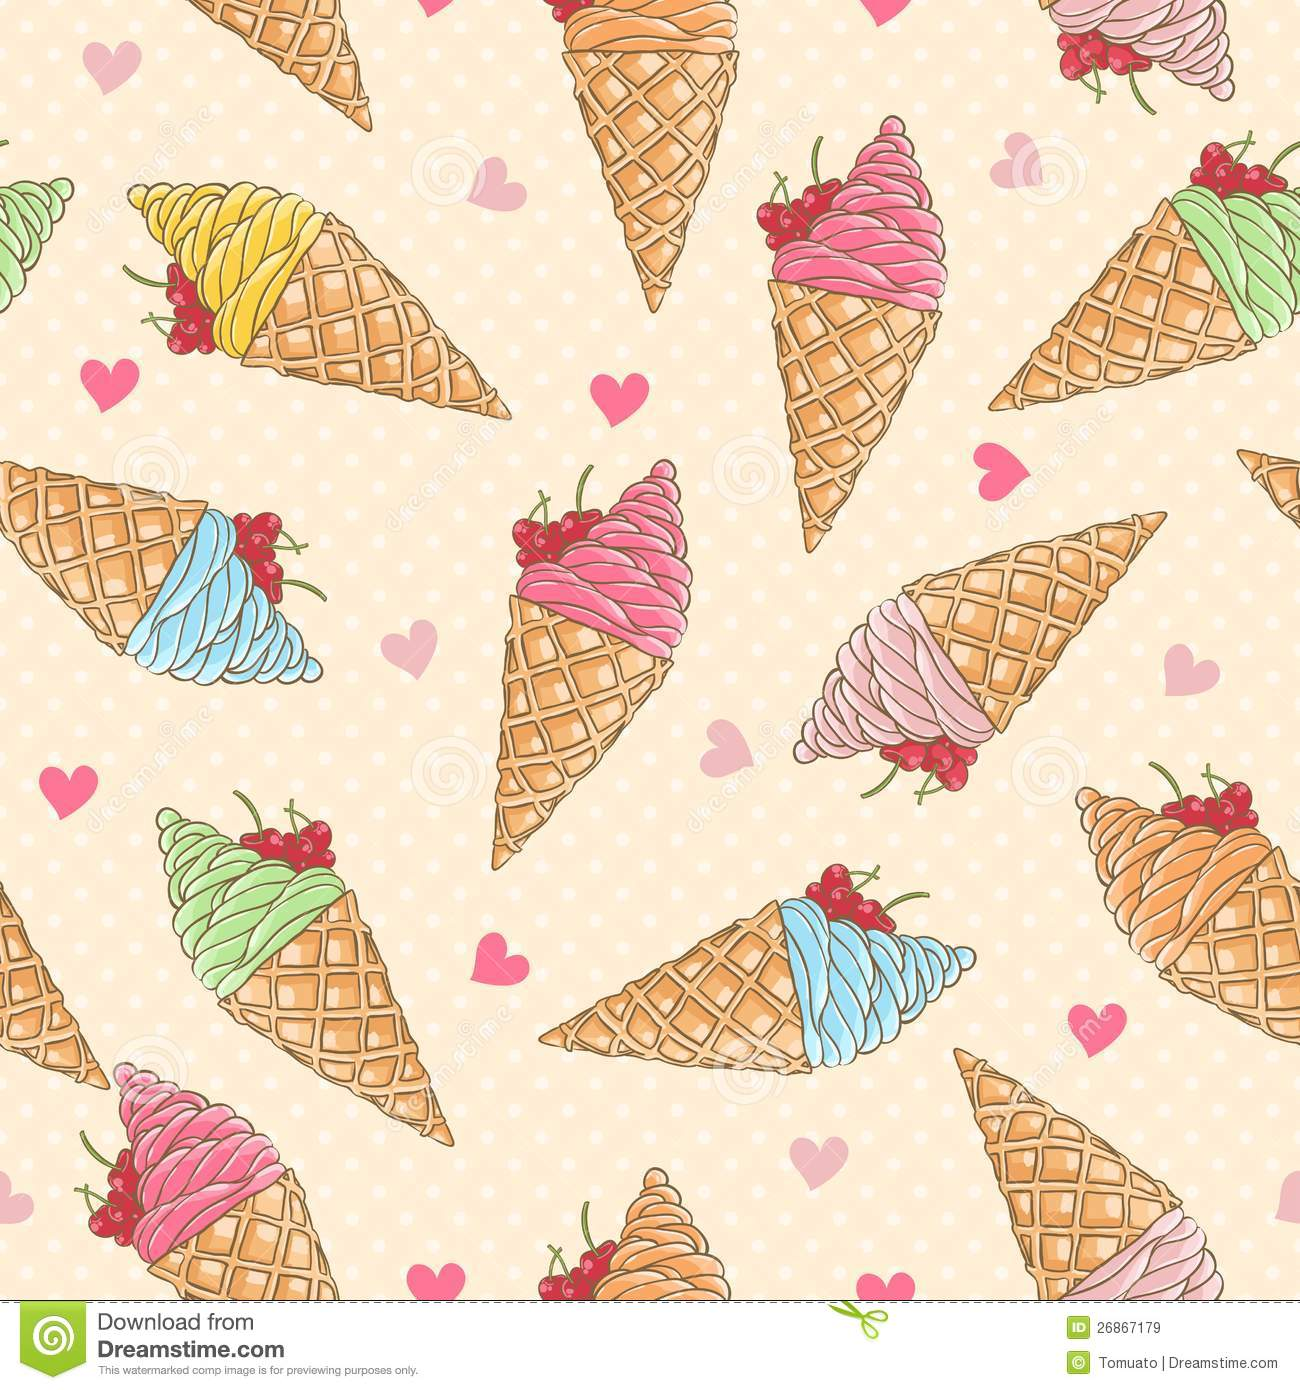 Seamless Ice Cream Wallpaper Royalty Free Stock Images: Colorful Ice-cream Seamless Pattern Royalty Free Stock